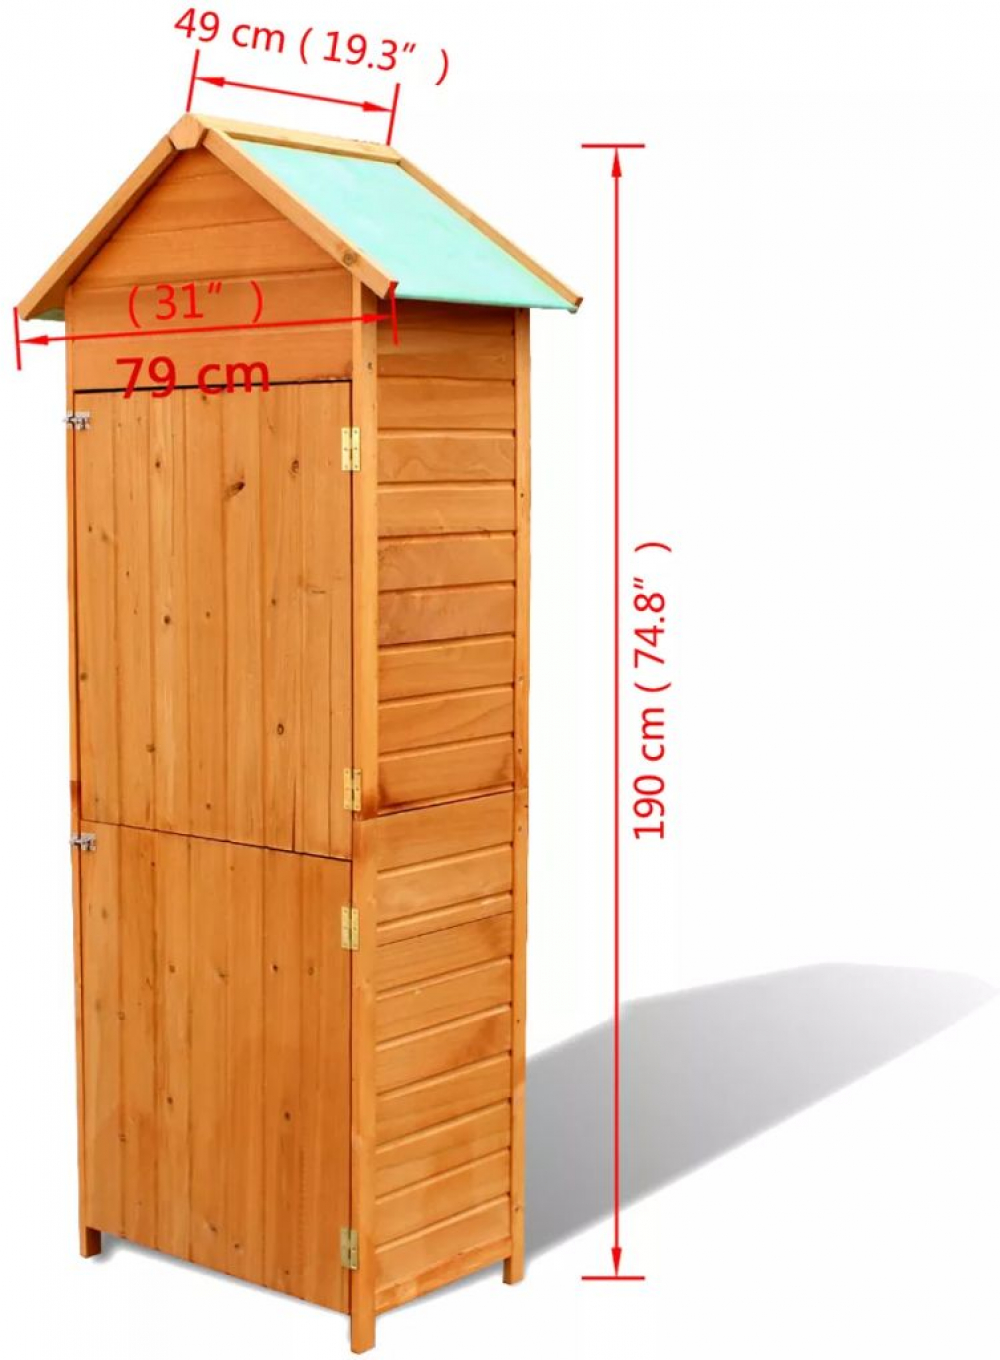 H4home Garden Tall Wooden Cabinet Shed Storage Box